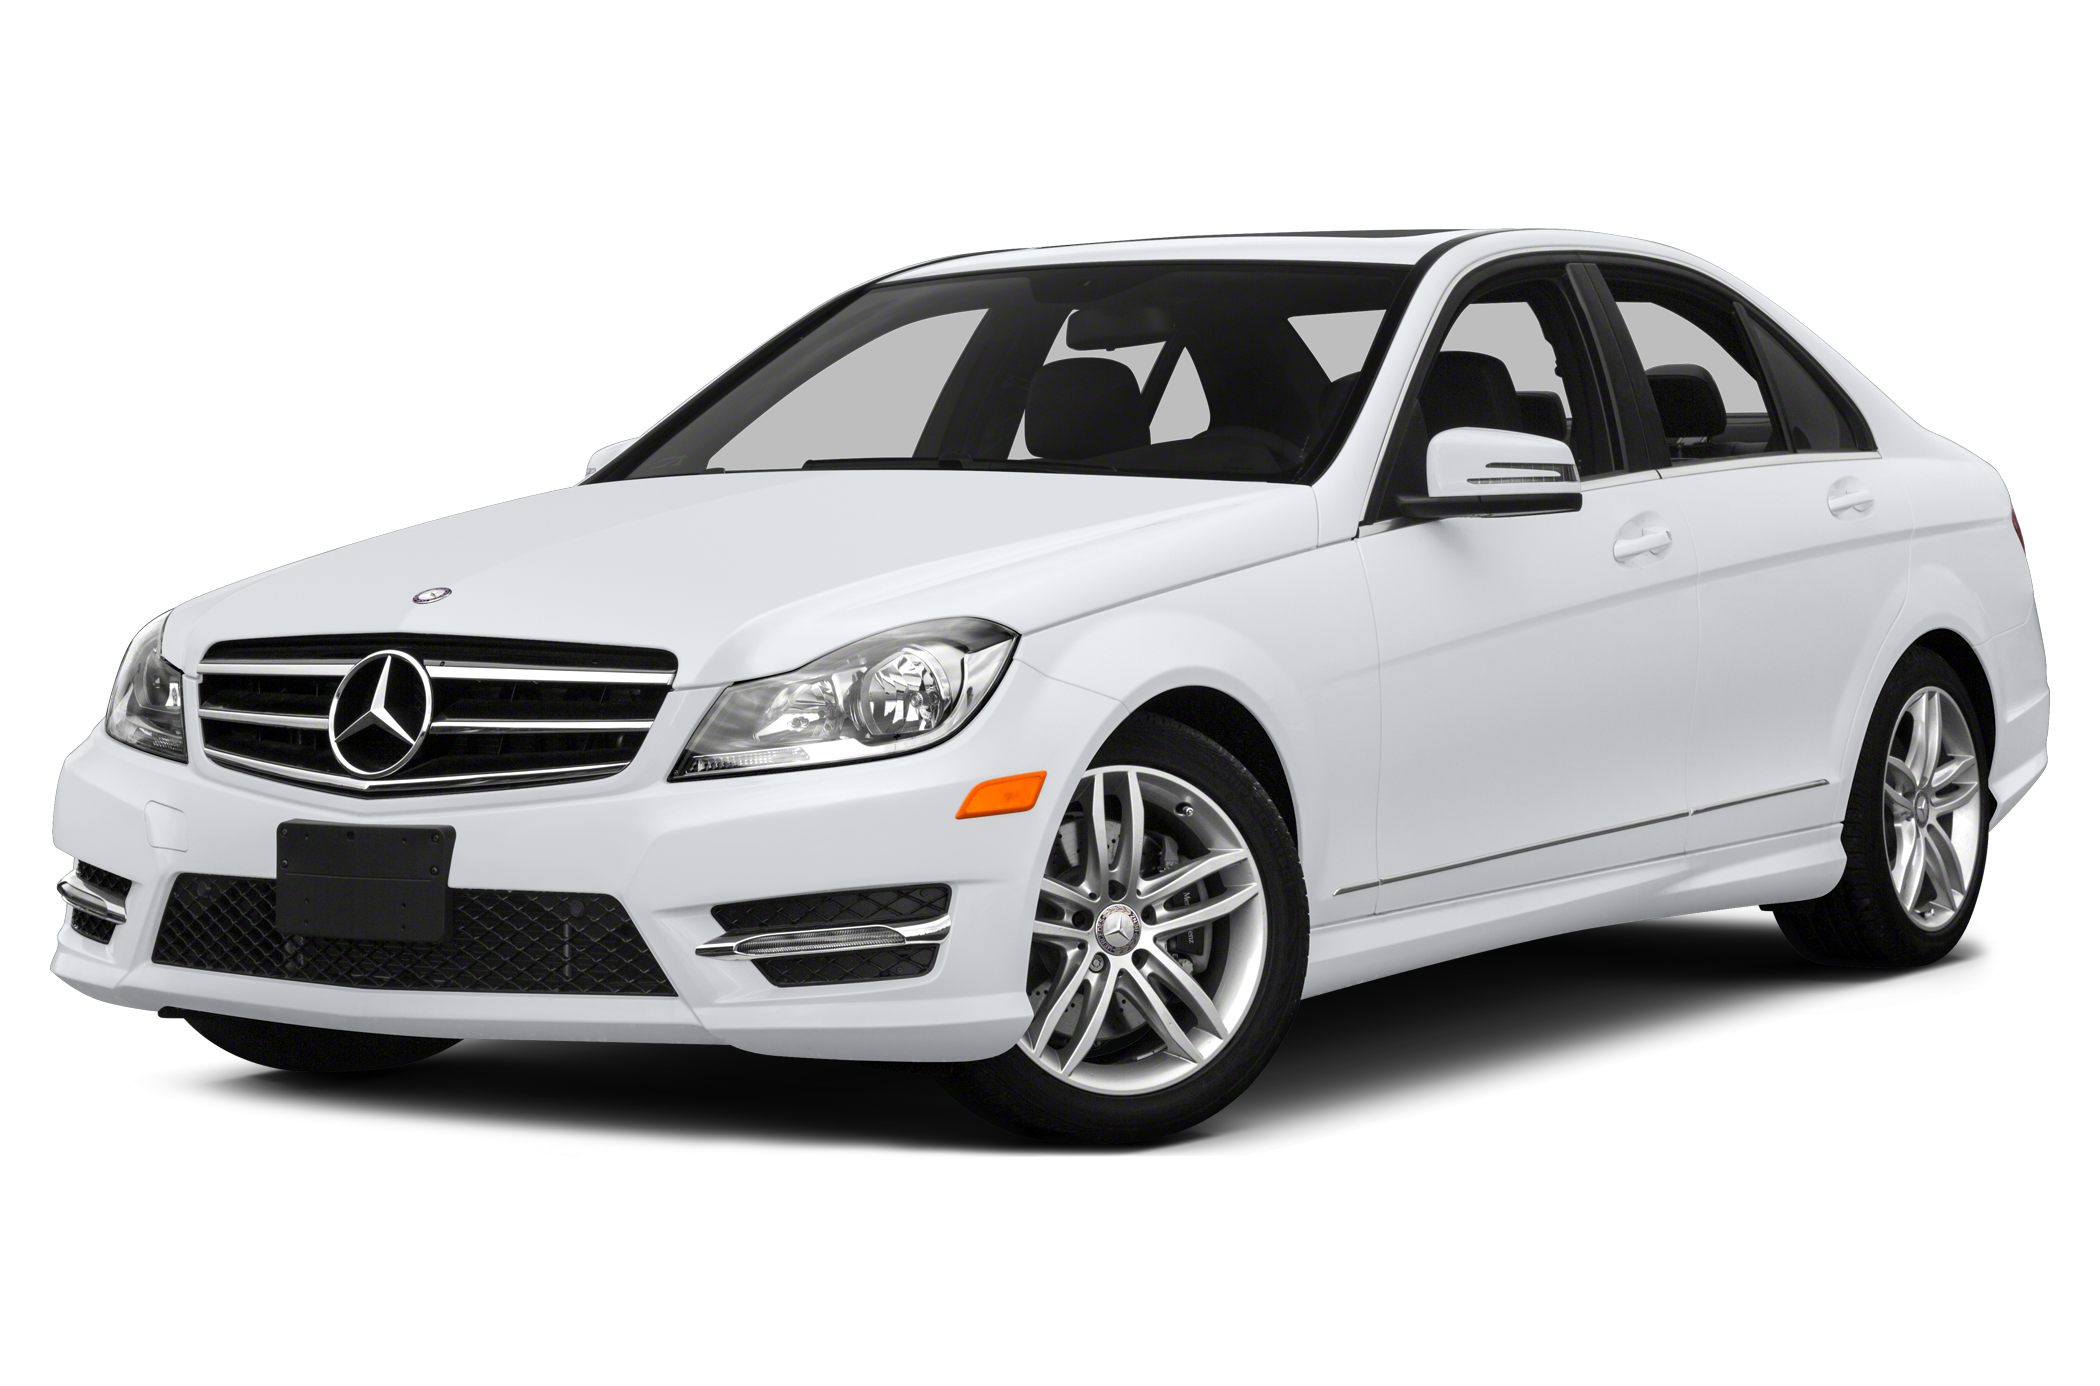 2014 Mercedes-Benz C-Class C300 4MATIC Sport Sedan for sale in Germantown for $43,700 with 25,928 miles.